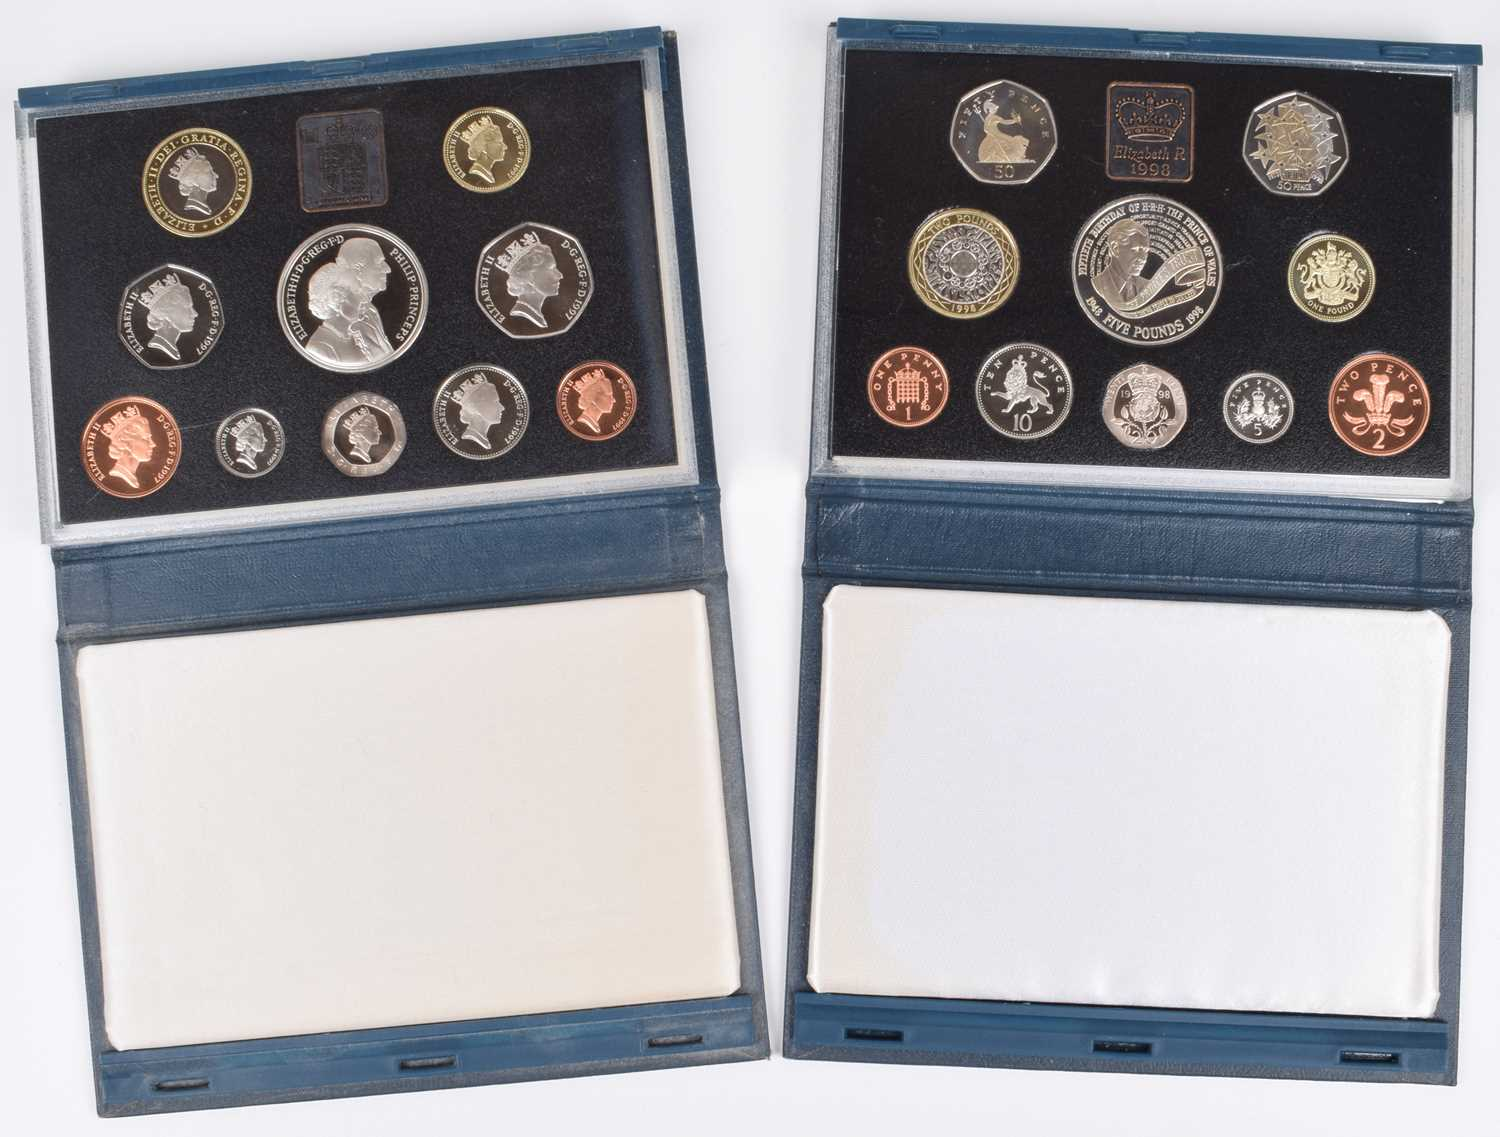 Lot 51 - United Kingdom Royal Mint Annual Proof Coin Collections for 1997 and 1998 (2).